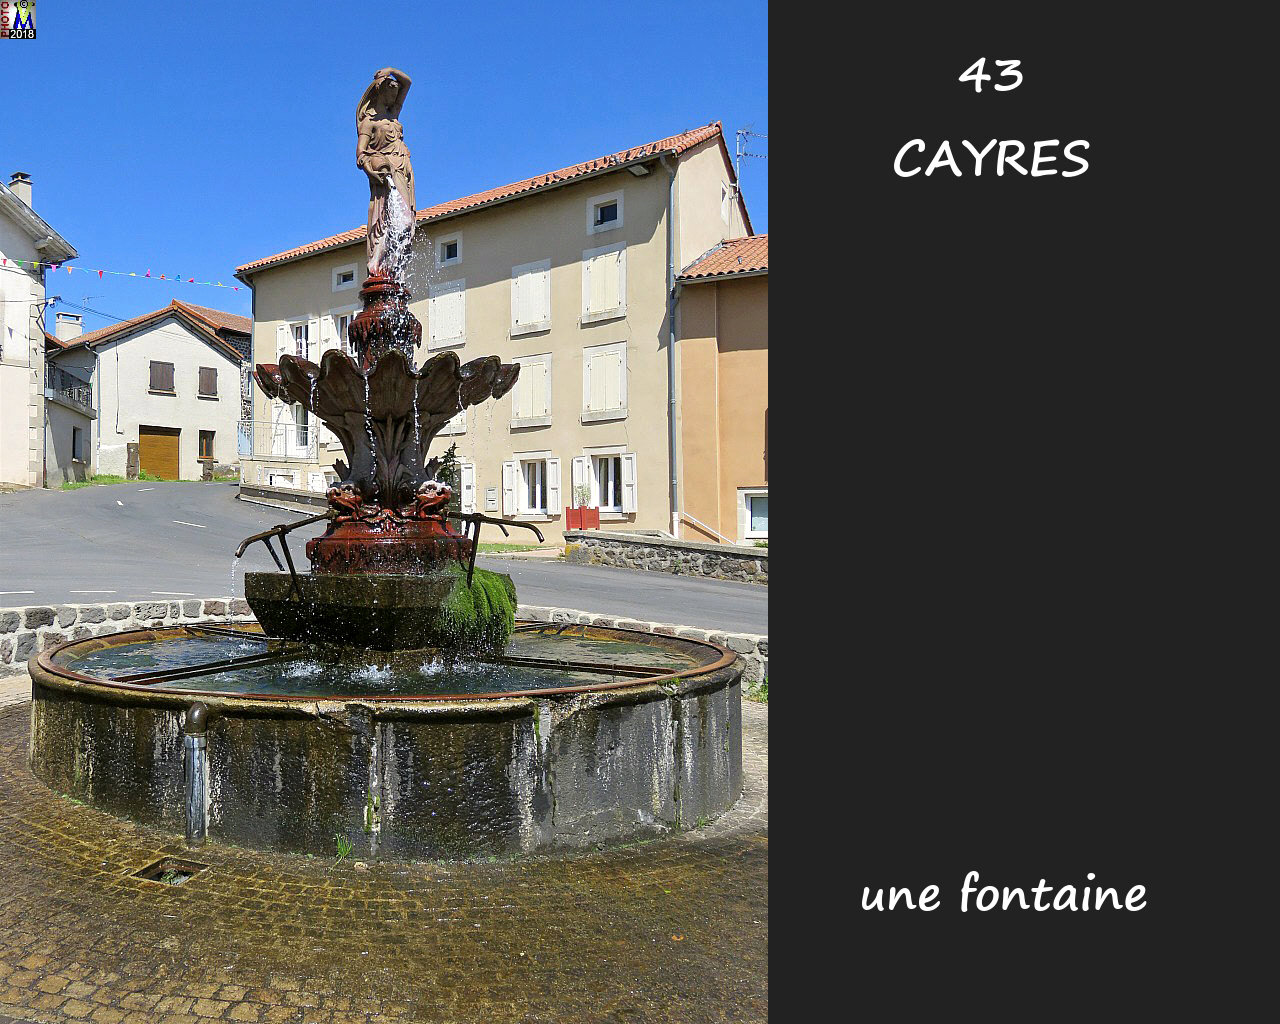 43CAYRES_fontaine_110.jpg